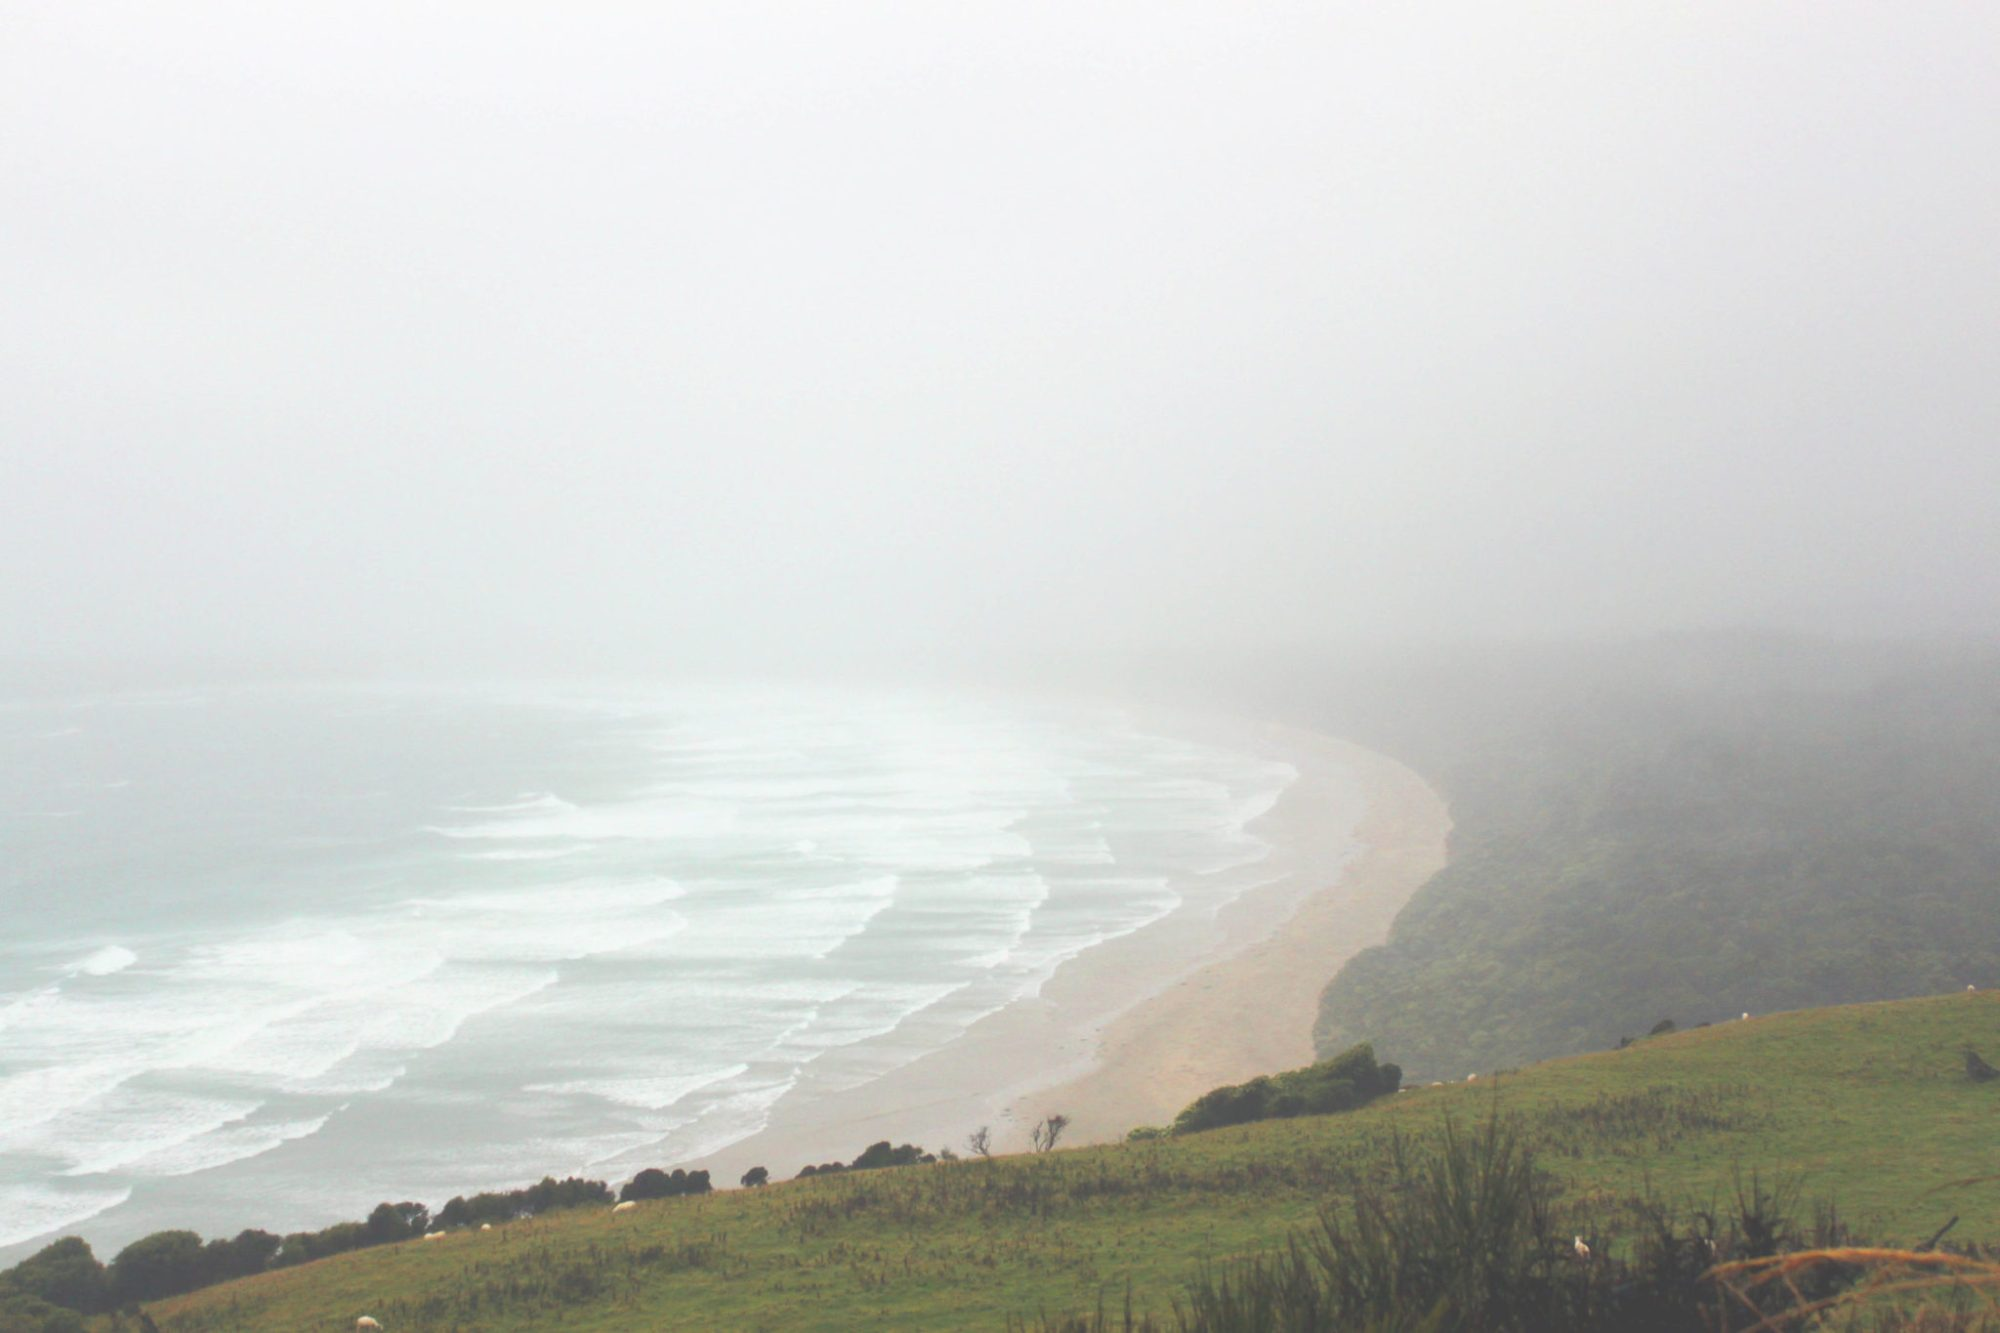 New Zealand's Purakaunui Bay is the filming location for Narnia's Cair Paravel   9 reasons why the Catlins needs to be on your New Zealand itinerary #newzealand #thecatlins #purakaunuibay #simplywander